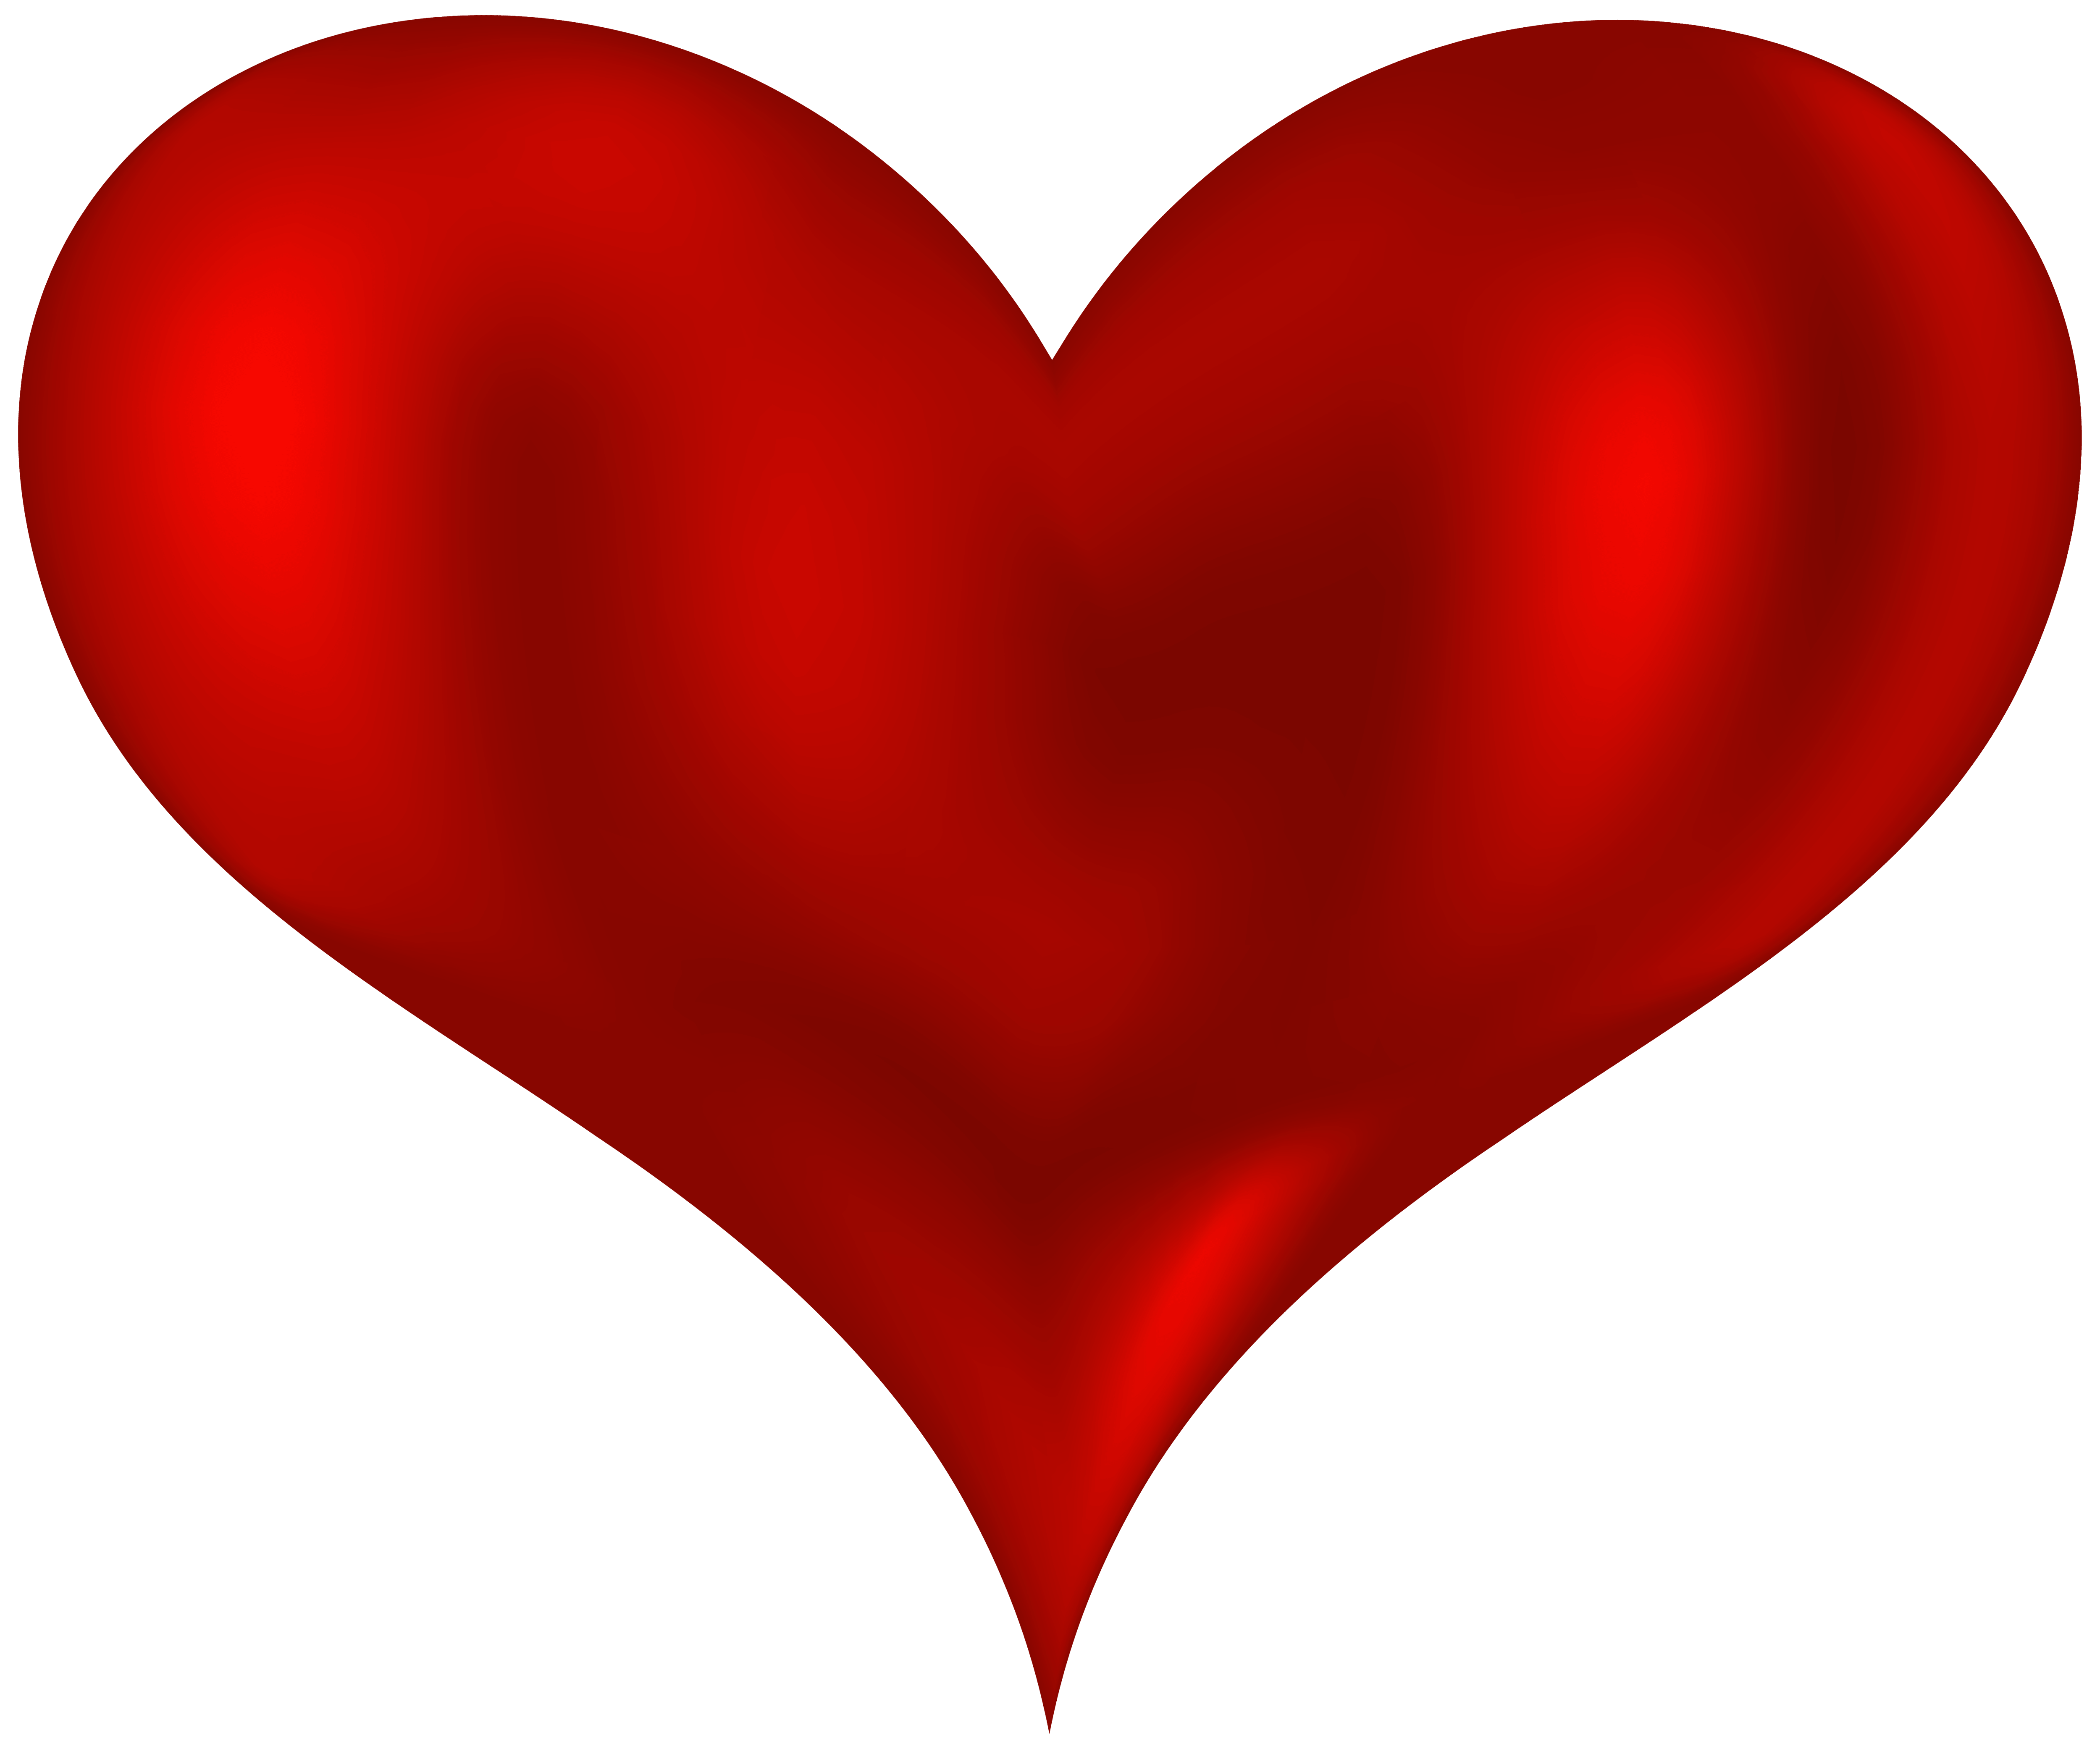 Heart clip art png. Beautiful red clipart